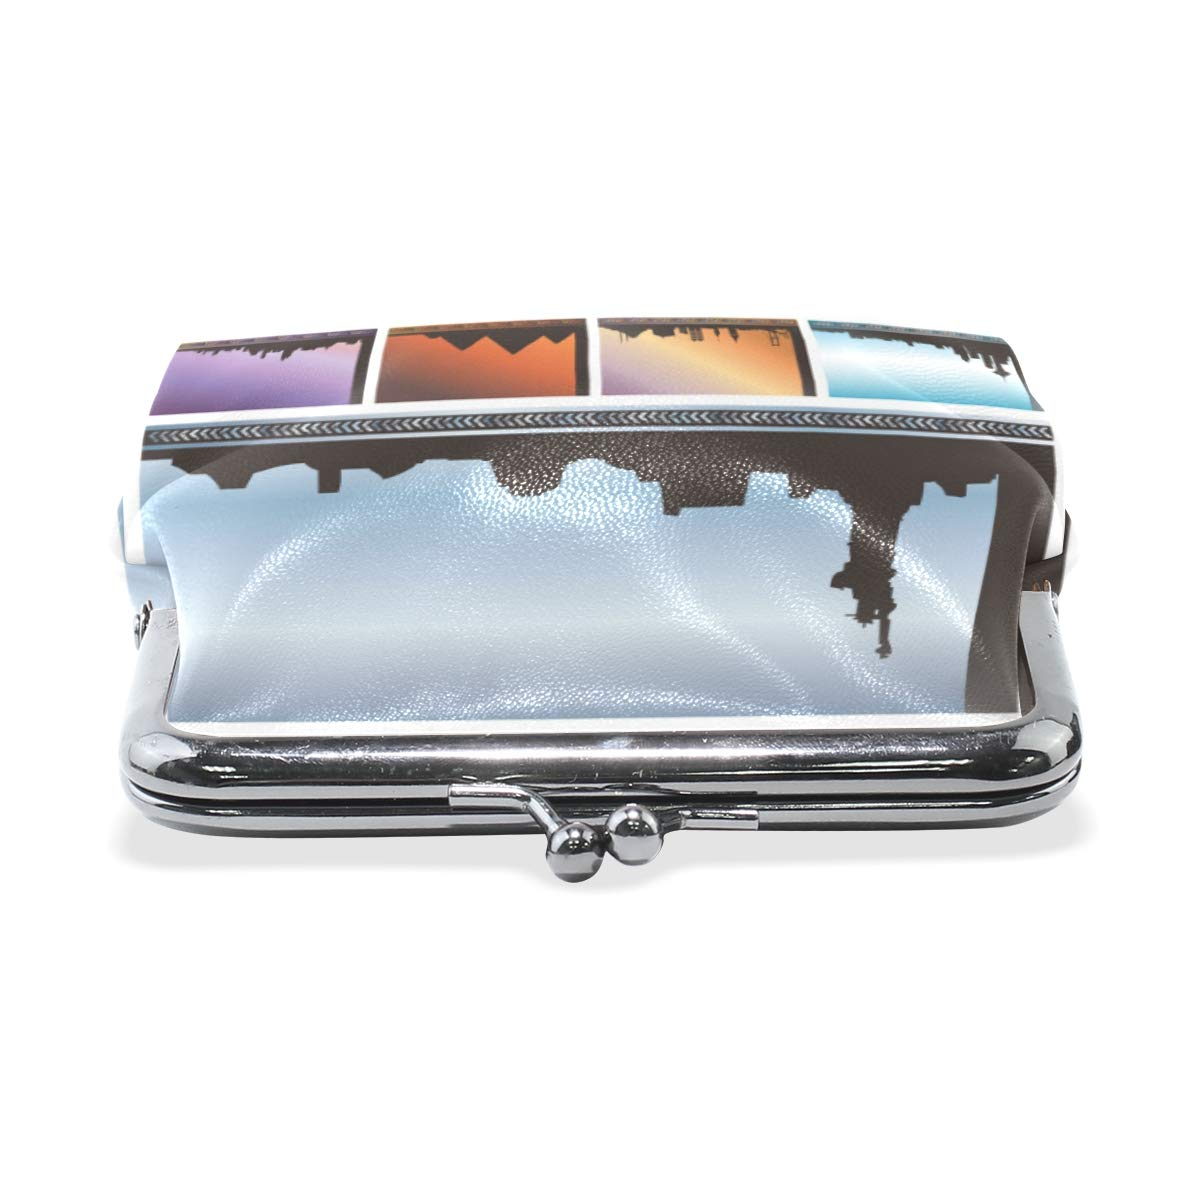 TIKISMILE Cityscapes Cards Leather Fashion Buckle Cute Coin Purse Bags Wallet